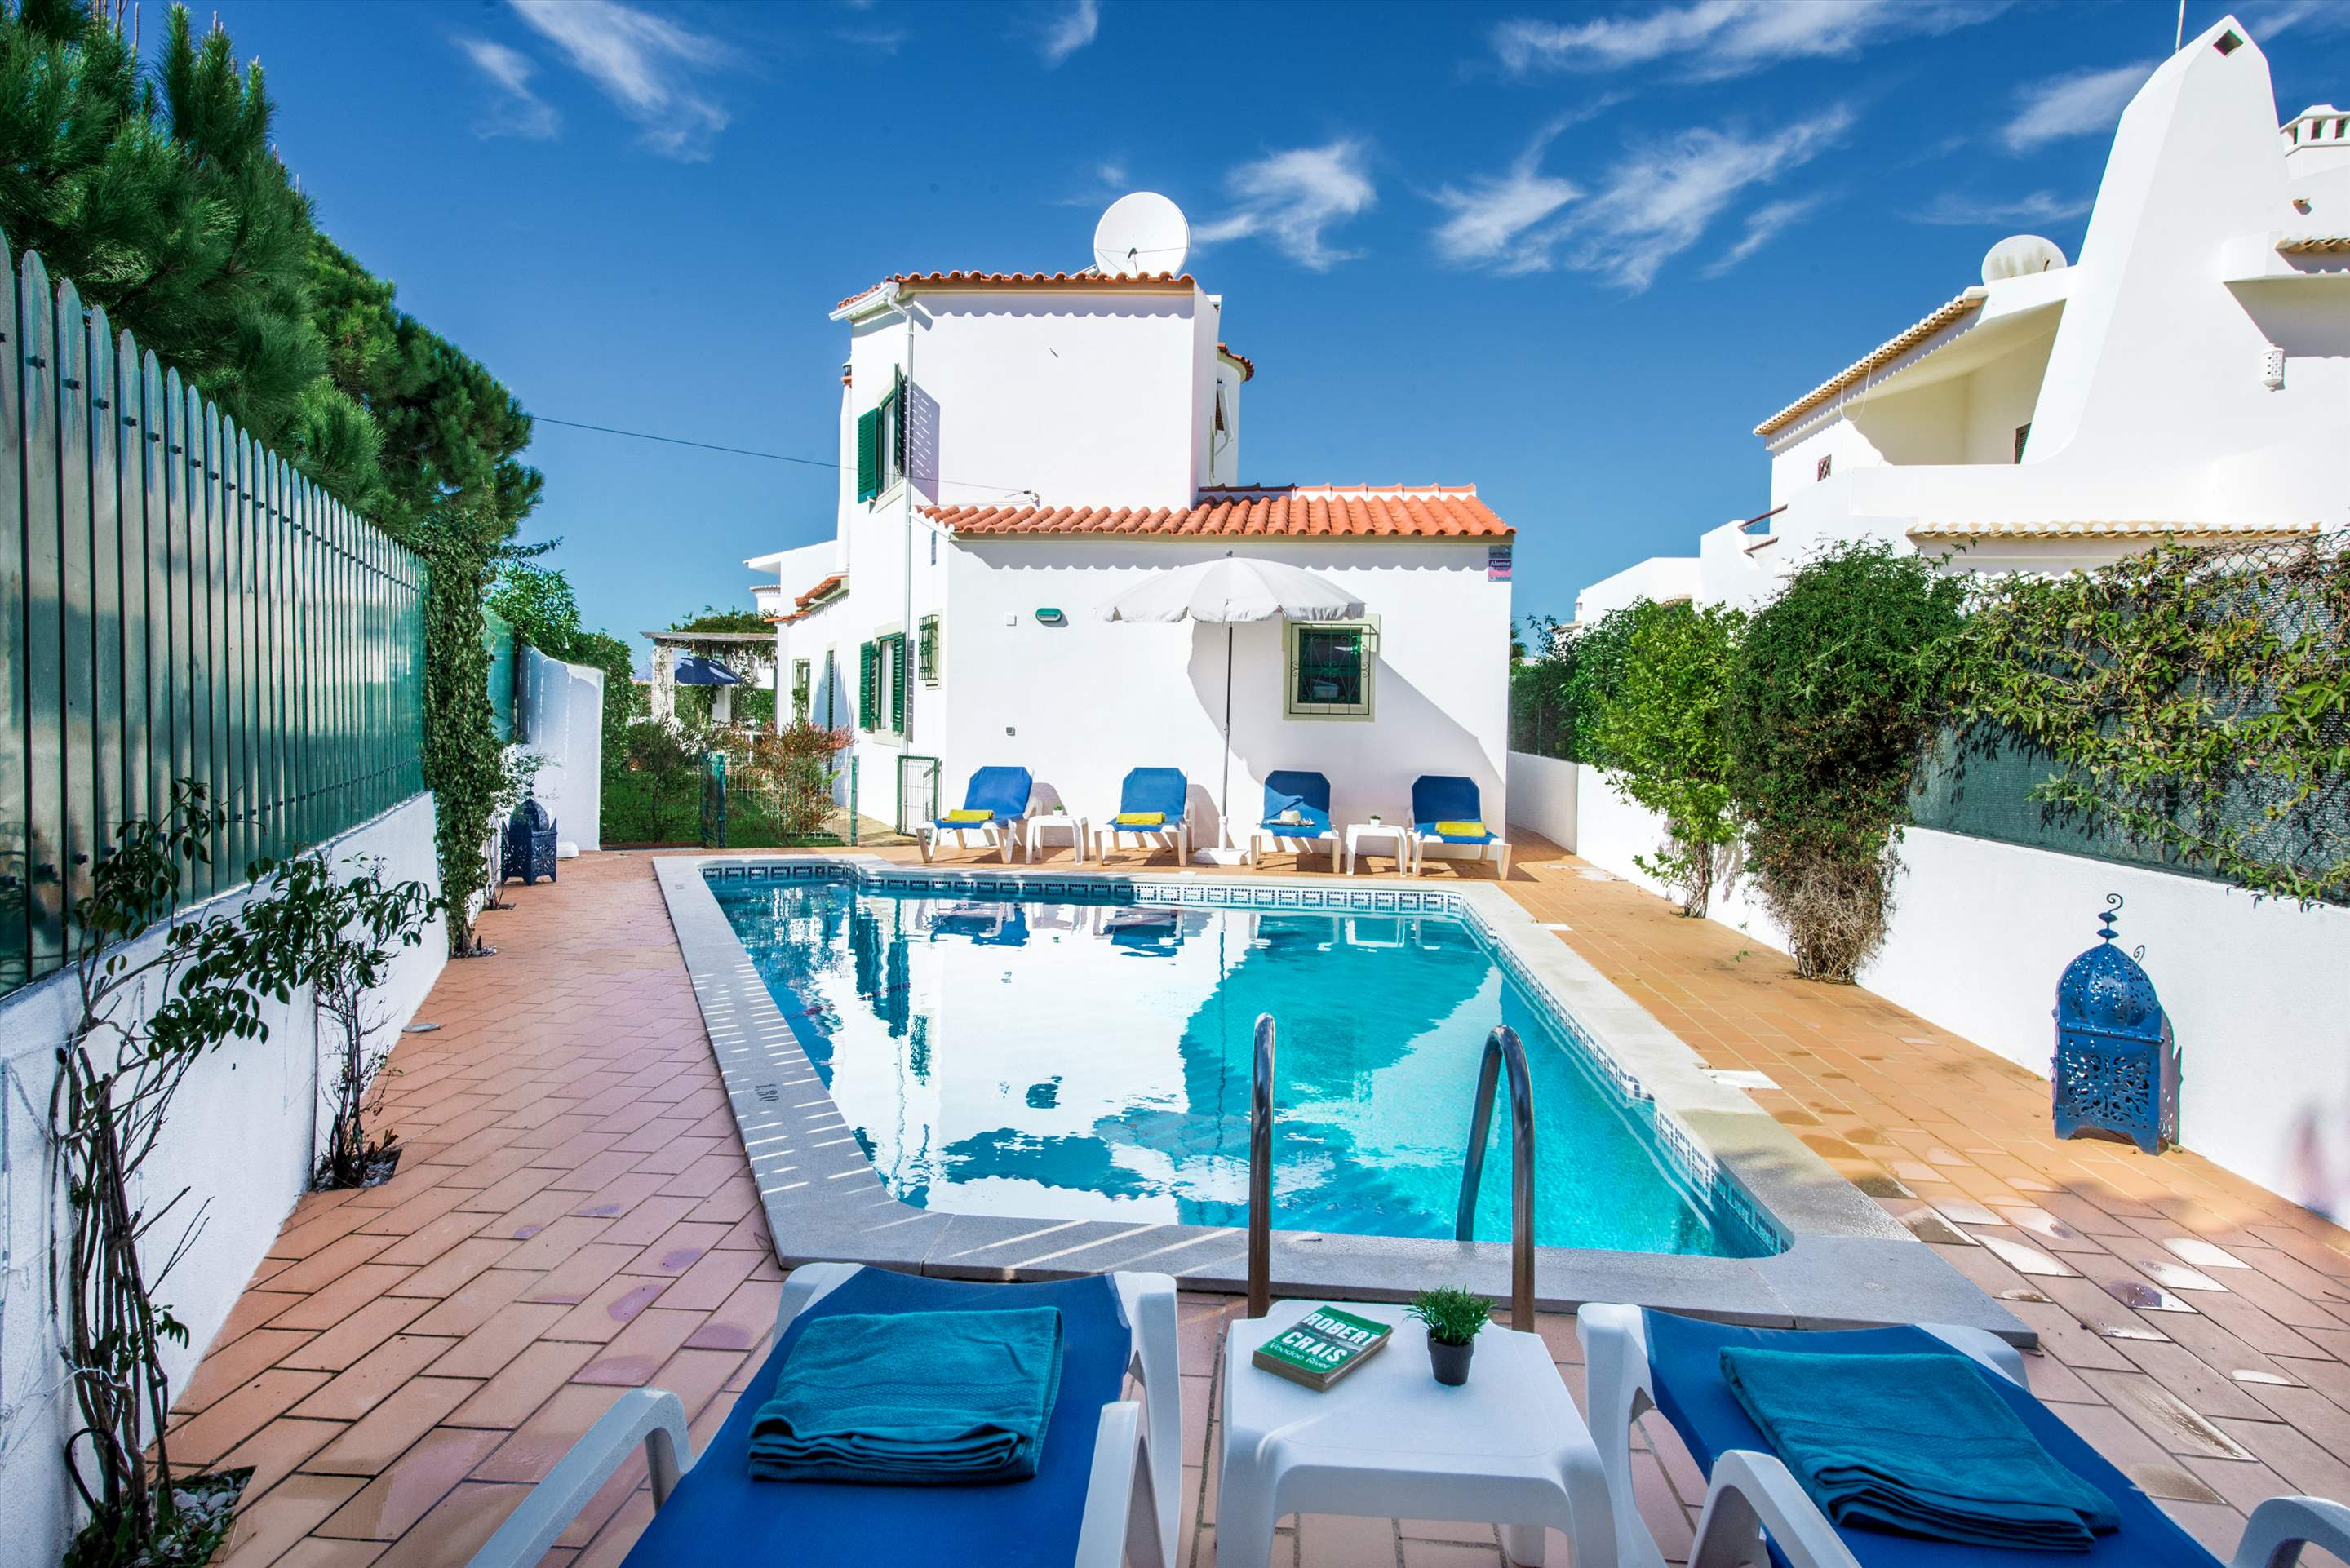 Julieta do Mar, Up to 6 Persons, 3 bedroom villa in Gale, Vale da Parra and Guia, Algarve Photo #8